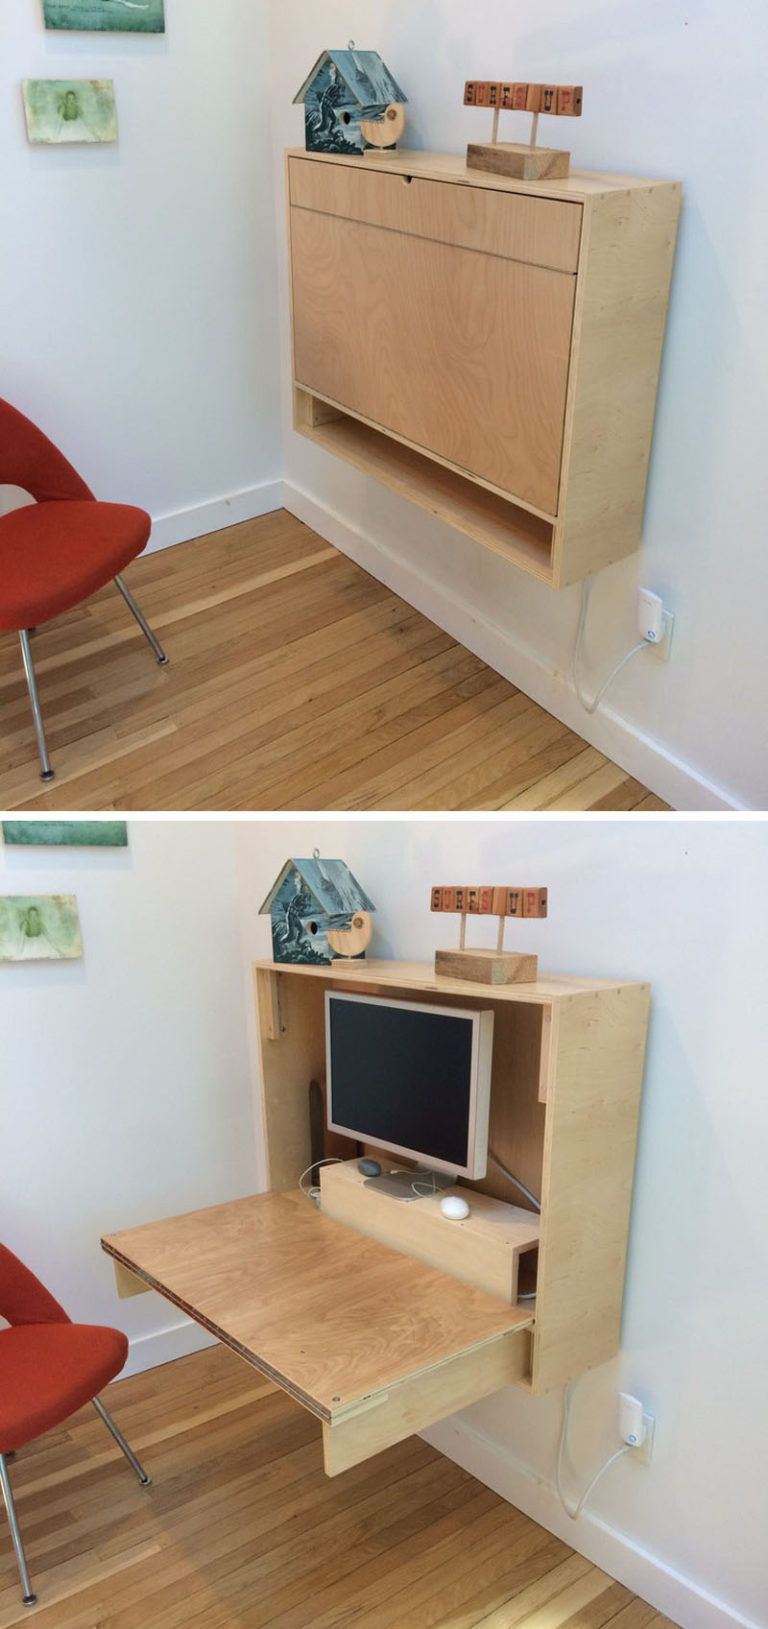 16 Wall Mounted Desk Ideas That Are Great For Small Spaces Desks